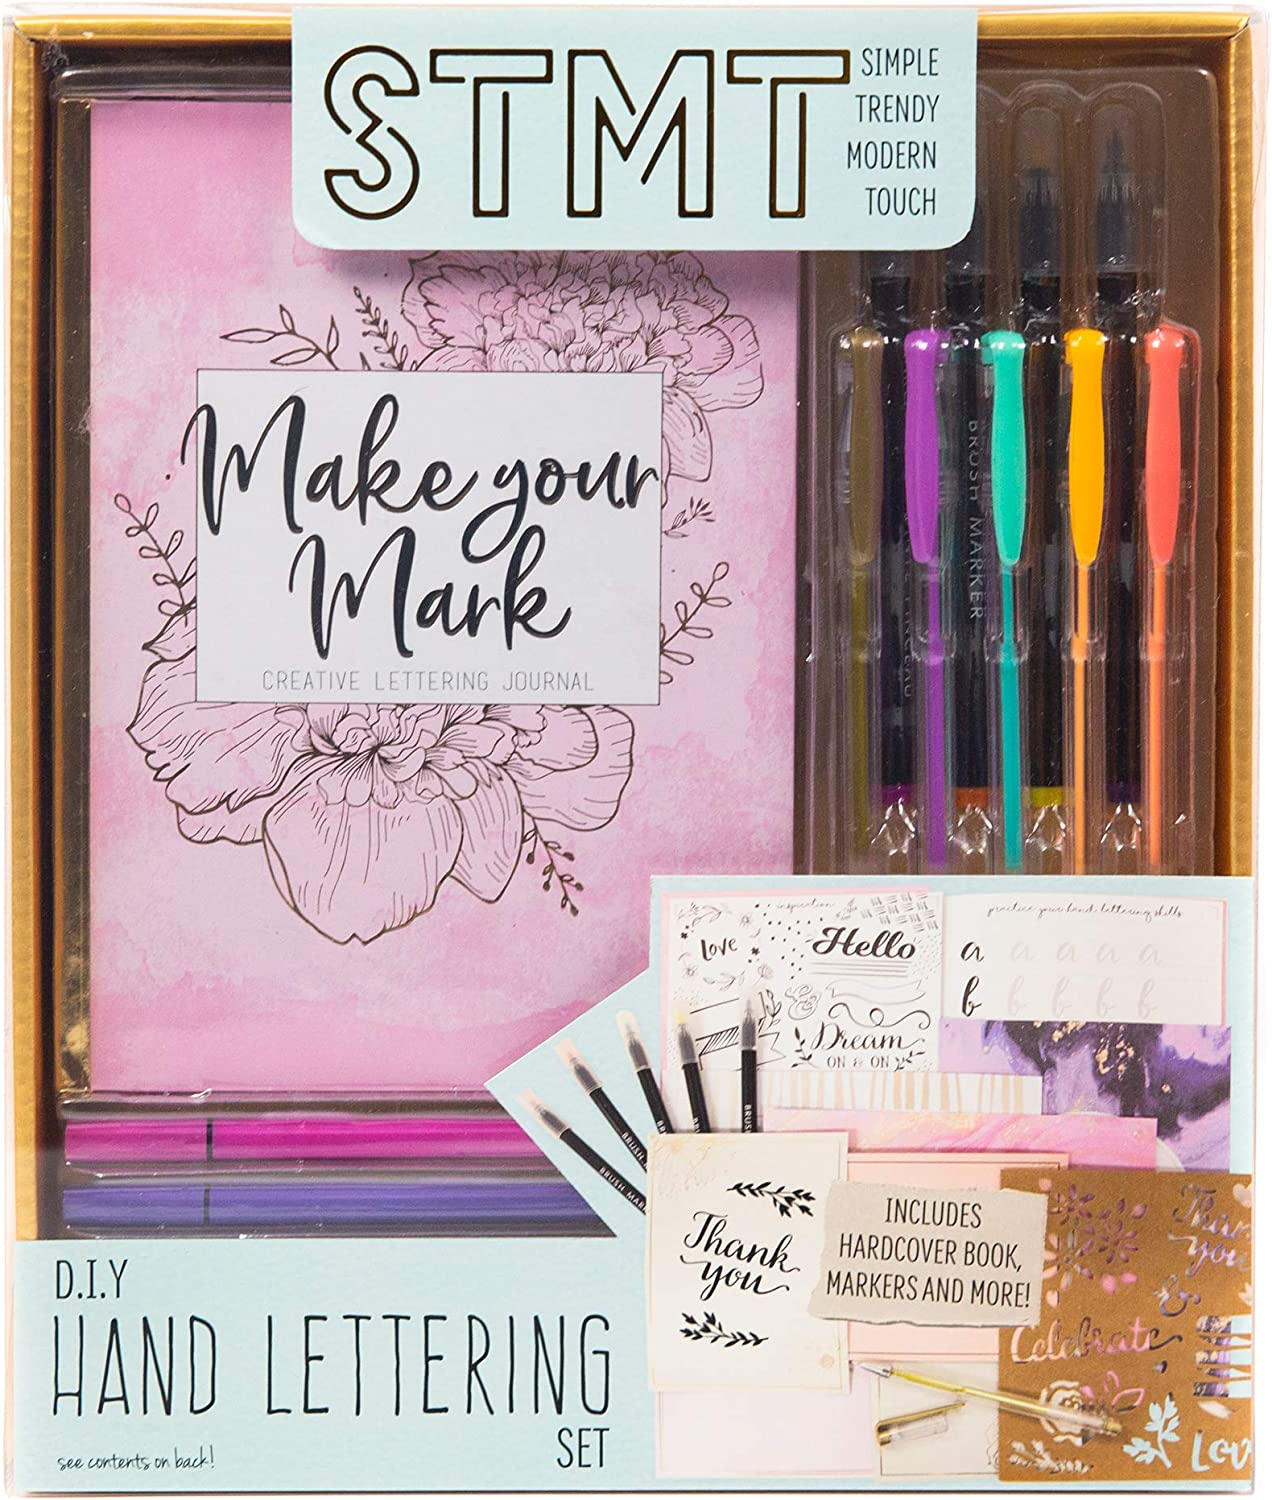 Brush Markers Stamp Pad STMT Social Stationery by Horizon Group USA Bullet Journaling Hand Lettering 6 Wooden Stamps Cards Envelopes Scrapbooking